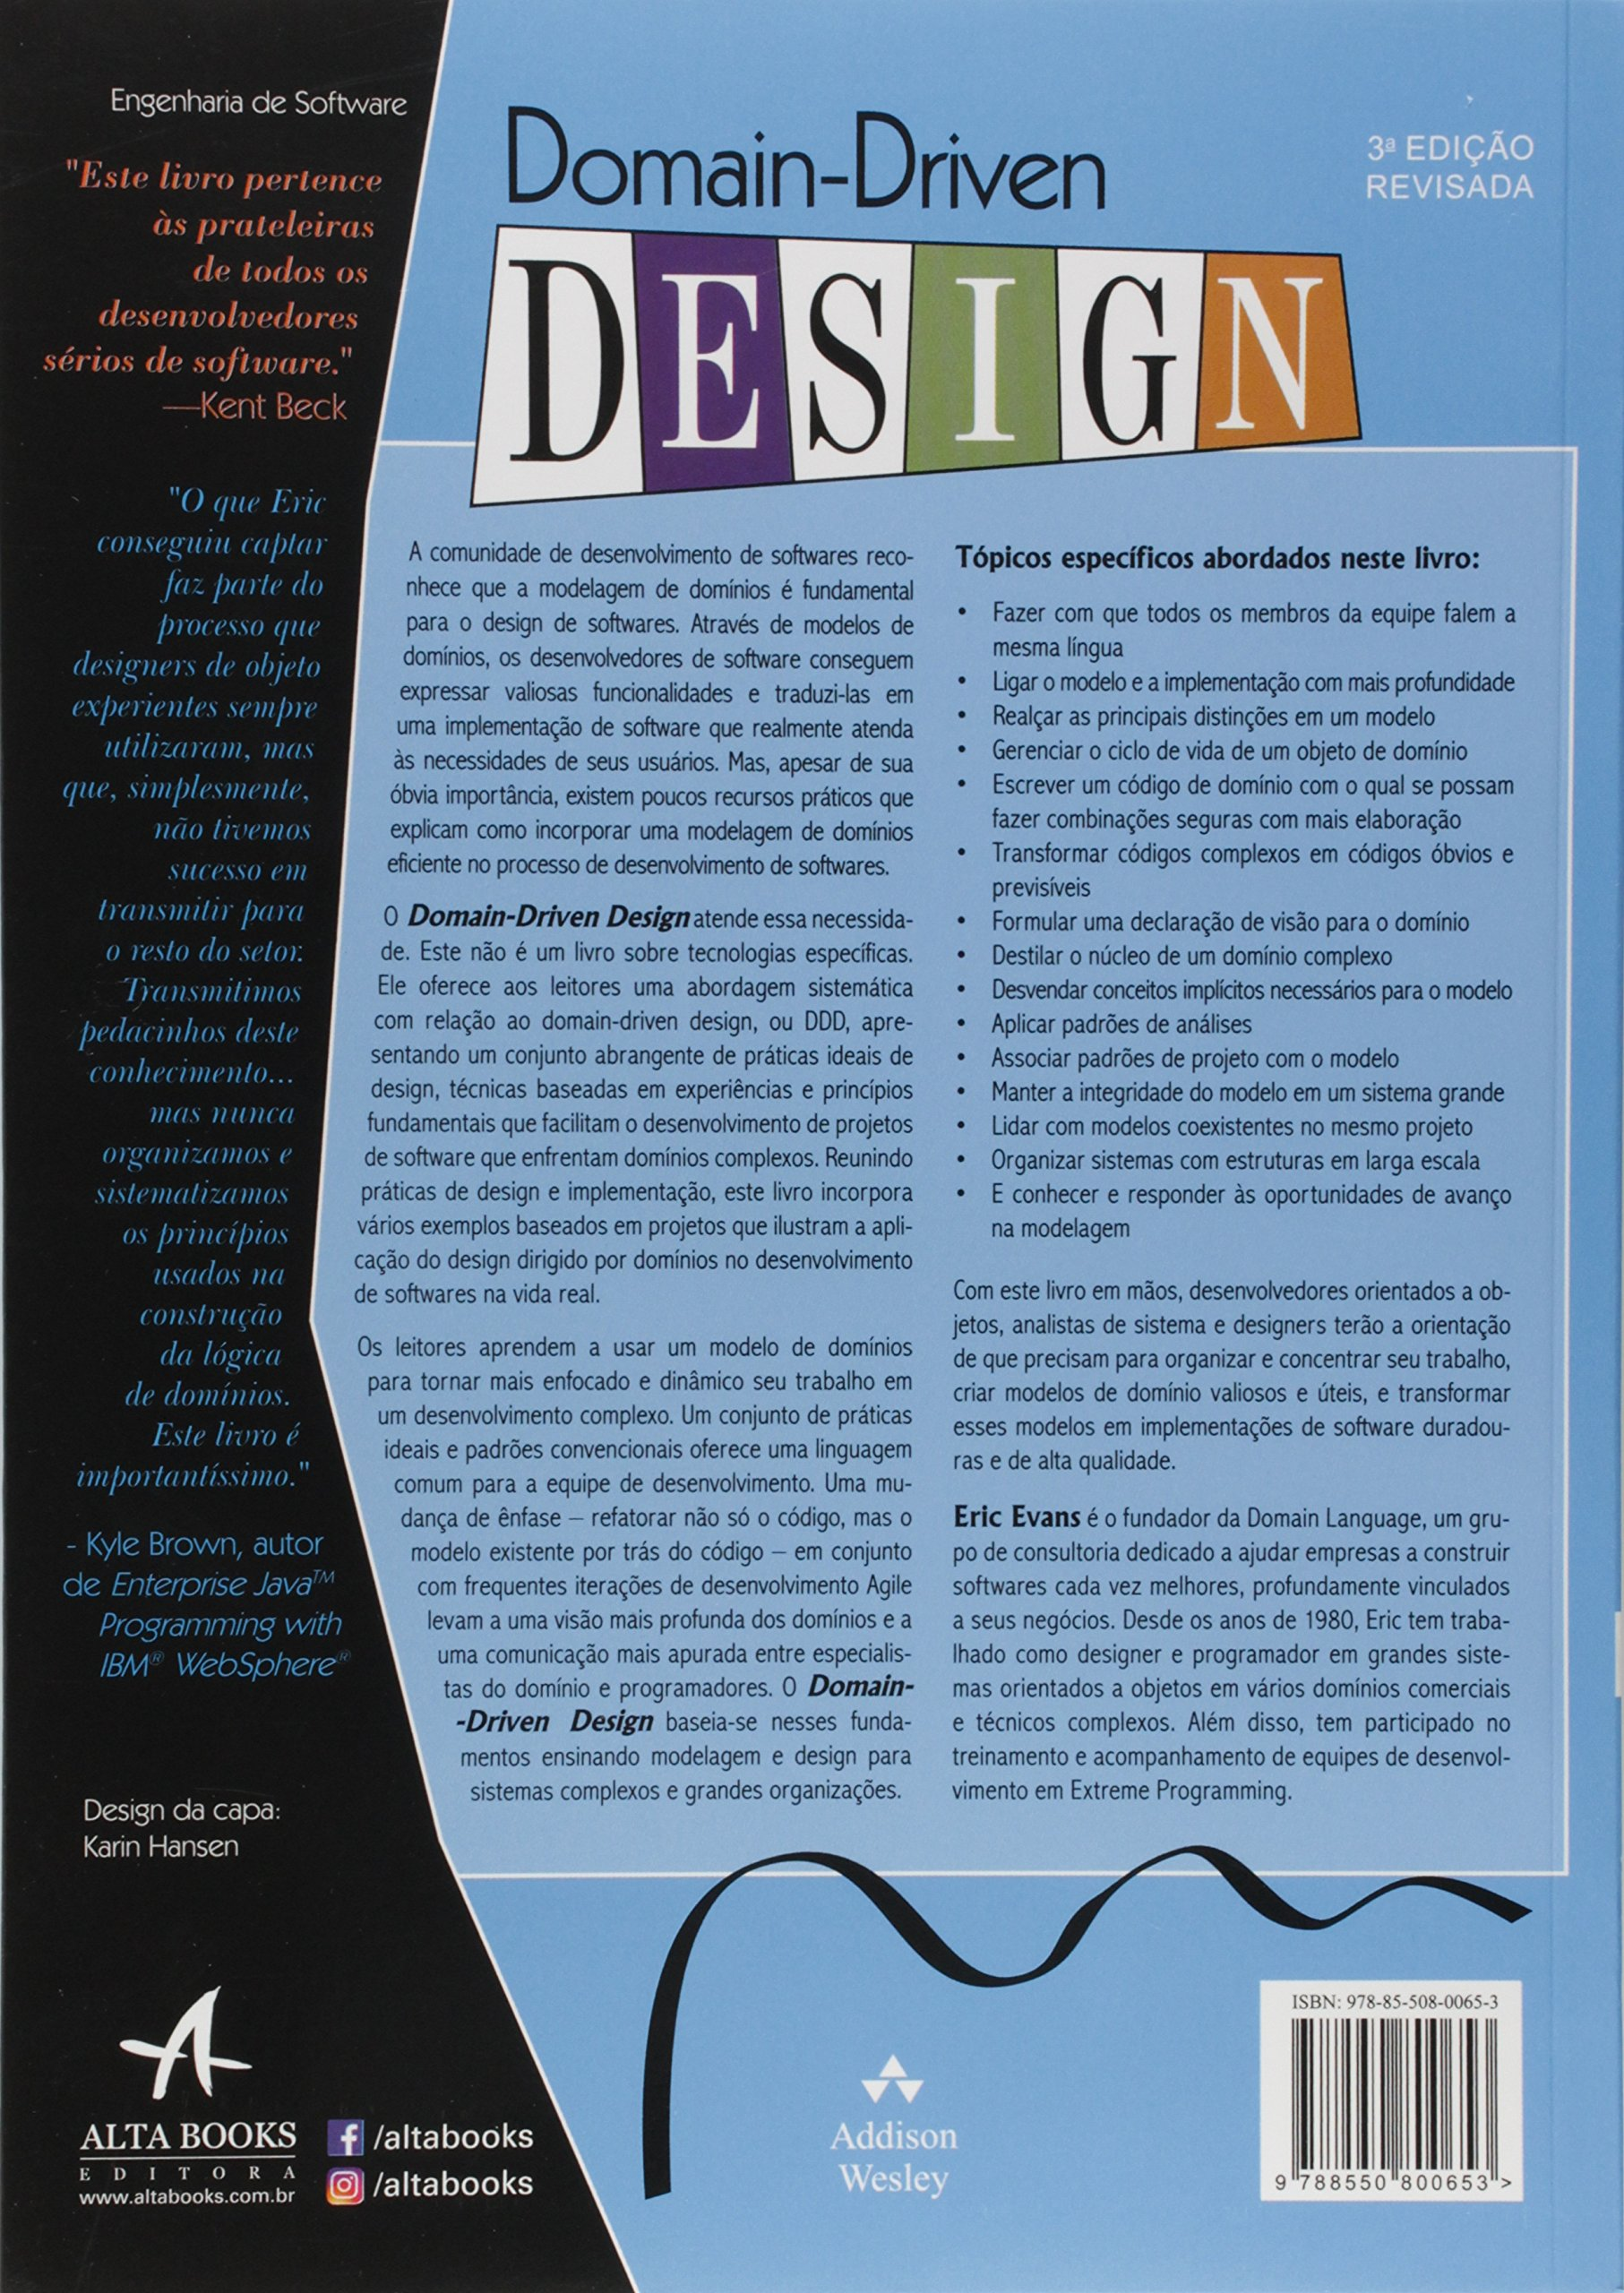 Domain driven design eric evans julio couto novais tiberio amazon domain driven design eric evans julio couto novais tiberio amazon livros fandeluxe Gallery